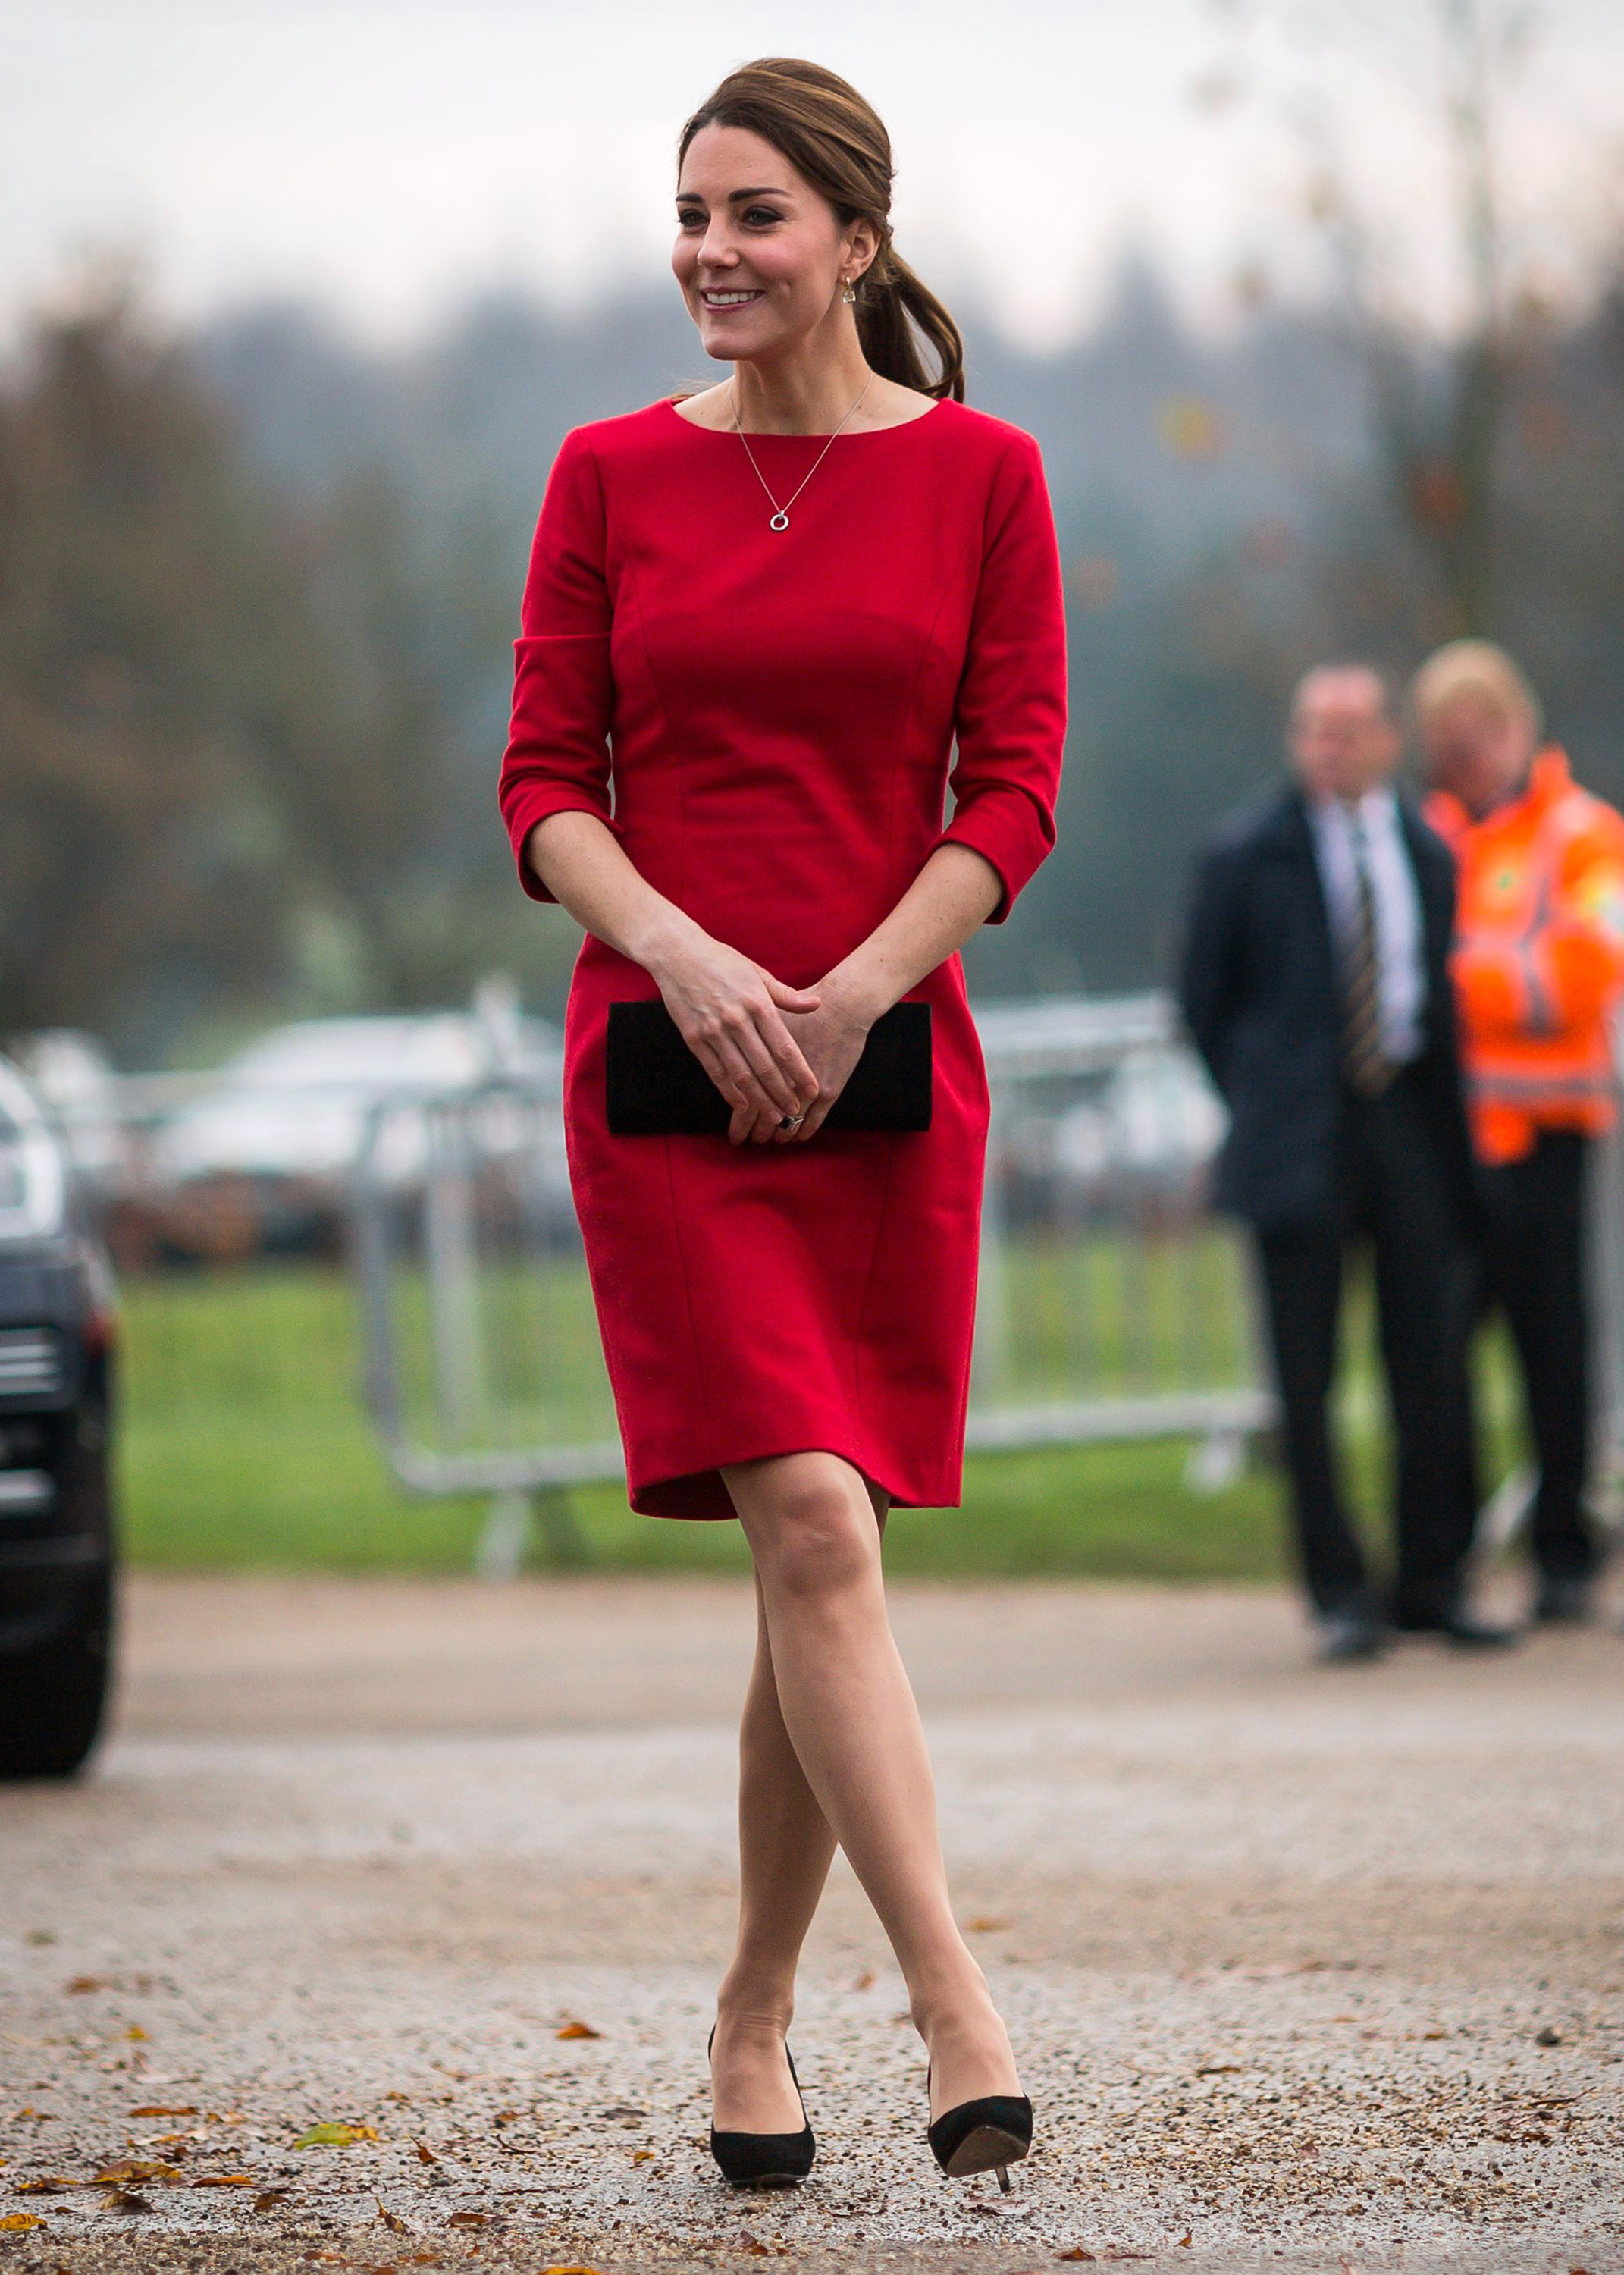 The Duchess of Cambridge attends the East Anglia's Children's Hospices Norfolk Capital Appeal launch at the Norfolk Showground, Norwich, Norfolk, UK on November 25, 2014. Picture by Paul Rogers/NMA-Pool Pictured: Duchess of Cambridge, Catherine, Kate Middleton Ref: SPL897303  251114   Picture by: Splash News Splash News and Pictures Los Angeles:	310-821-2666 New York:	212-619-2666 London:	870-934-2666 photodesk@splashnews.com